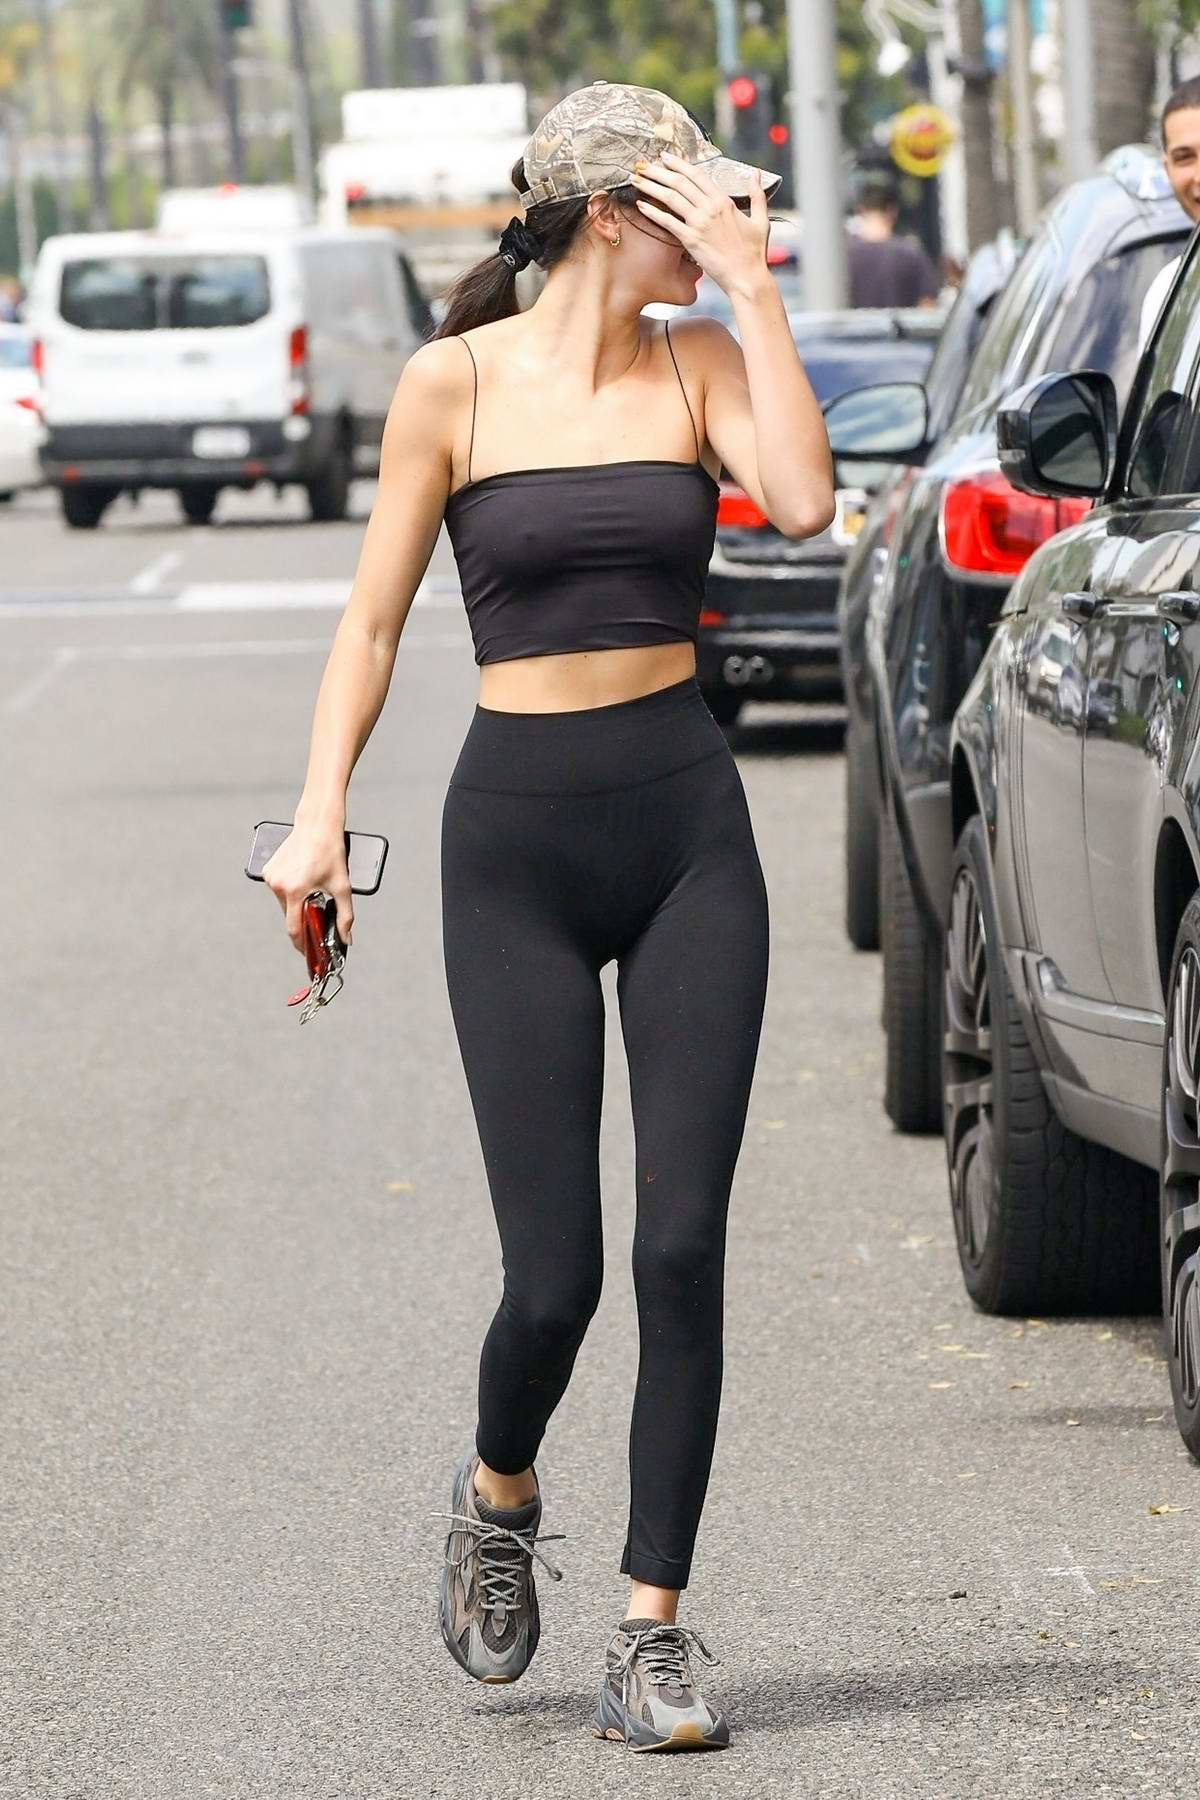 Kendall Jenner shows off her slender figure in a black crop top with matching leggings during a lunch outing in Beverly Hills, Los Angeles